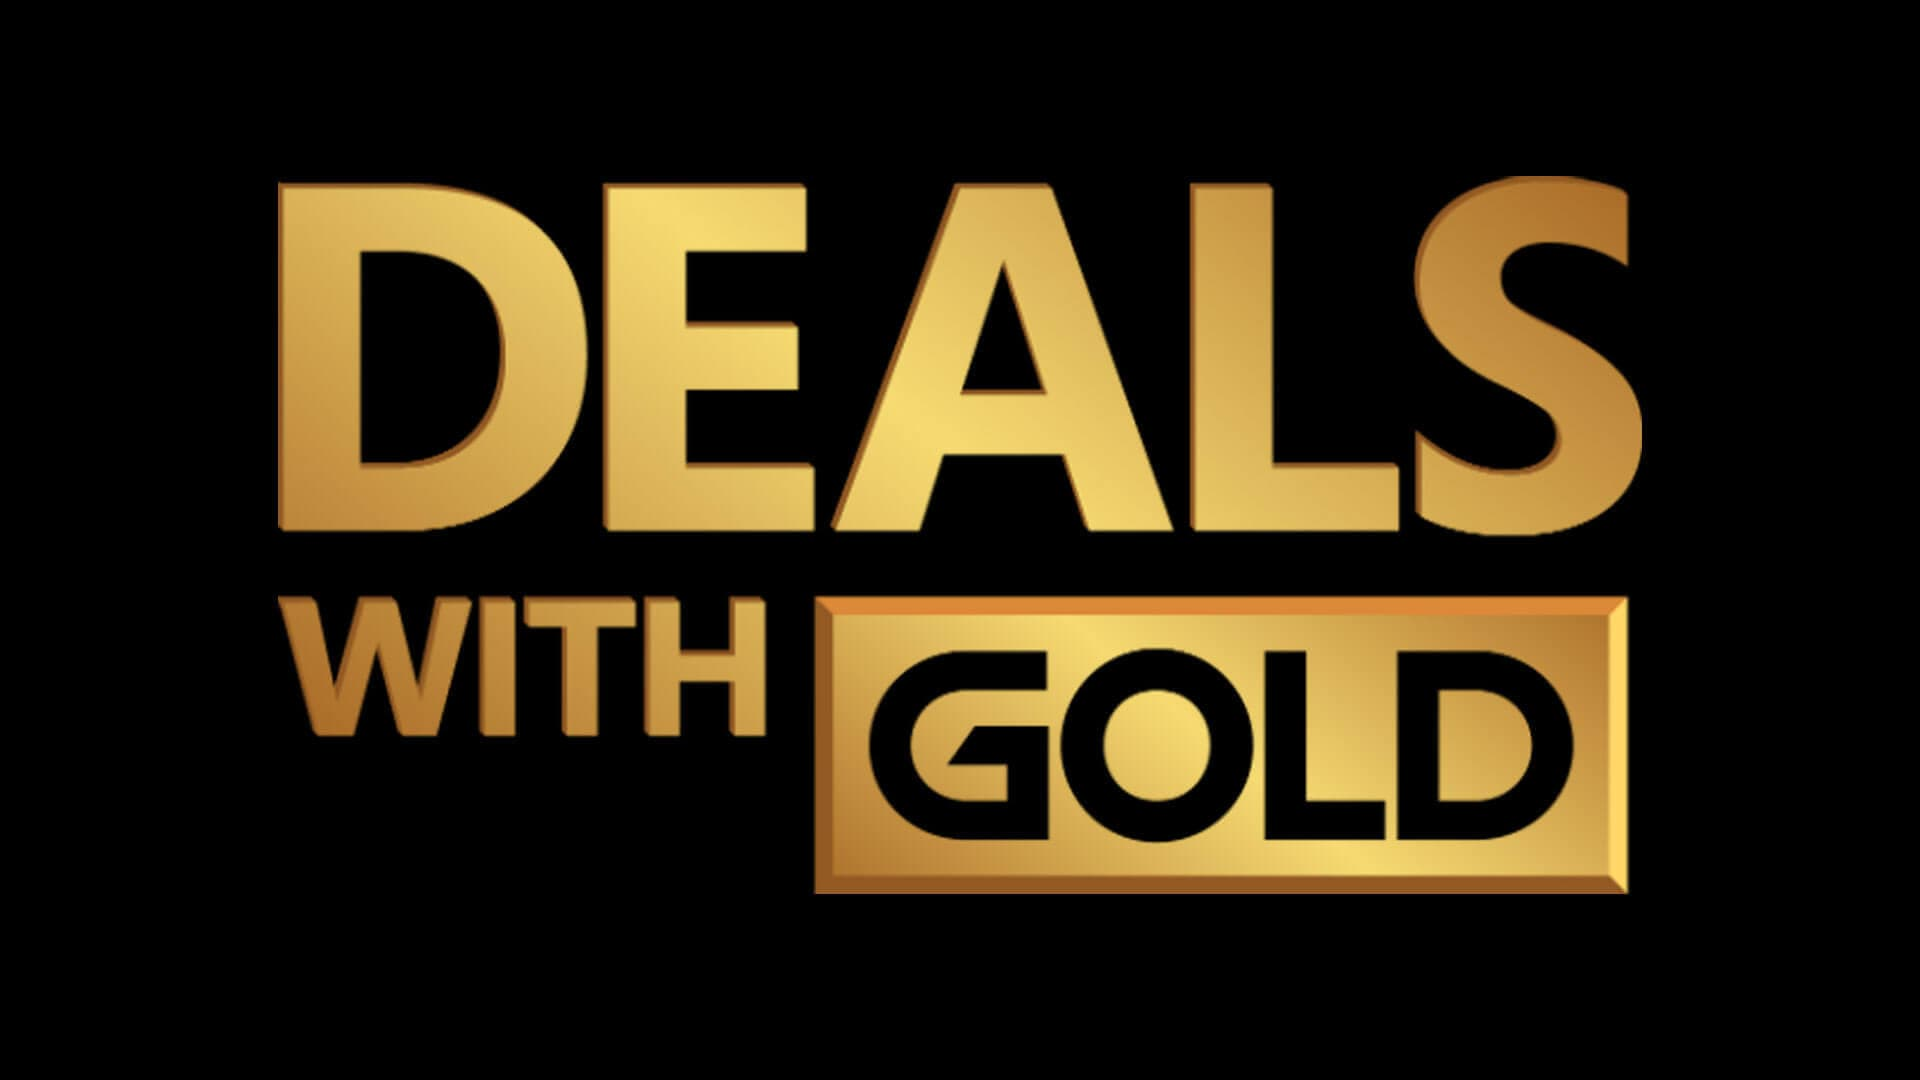 Deals with Gold semaine 01